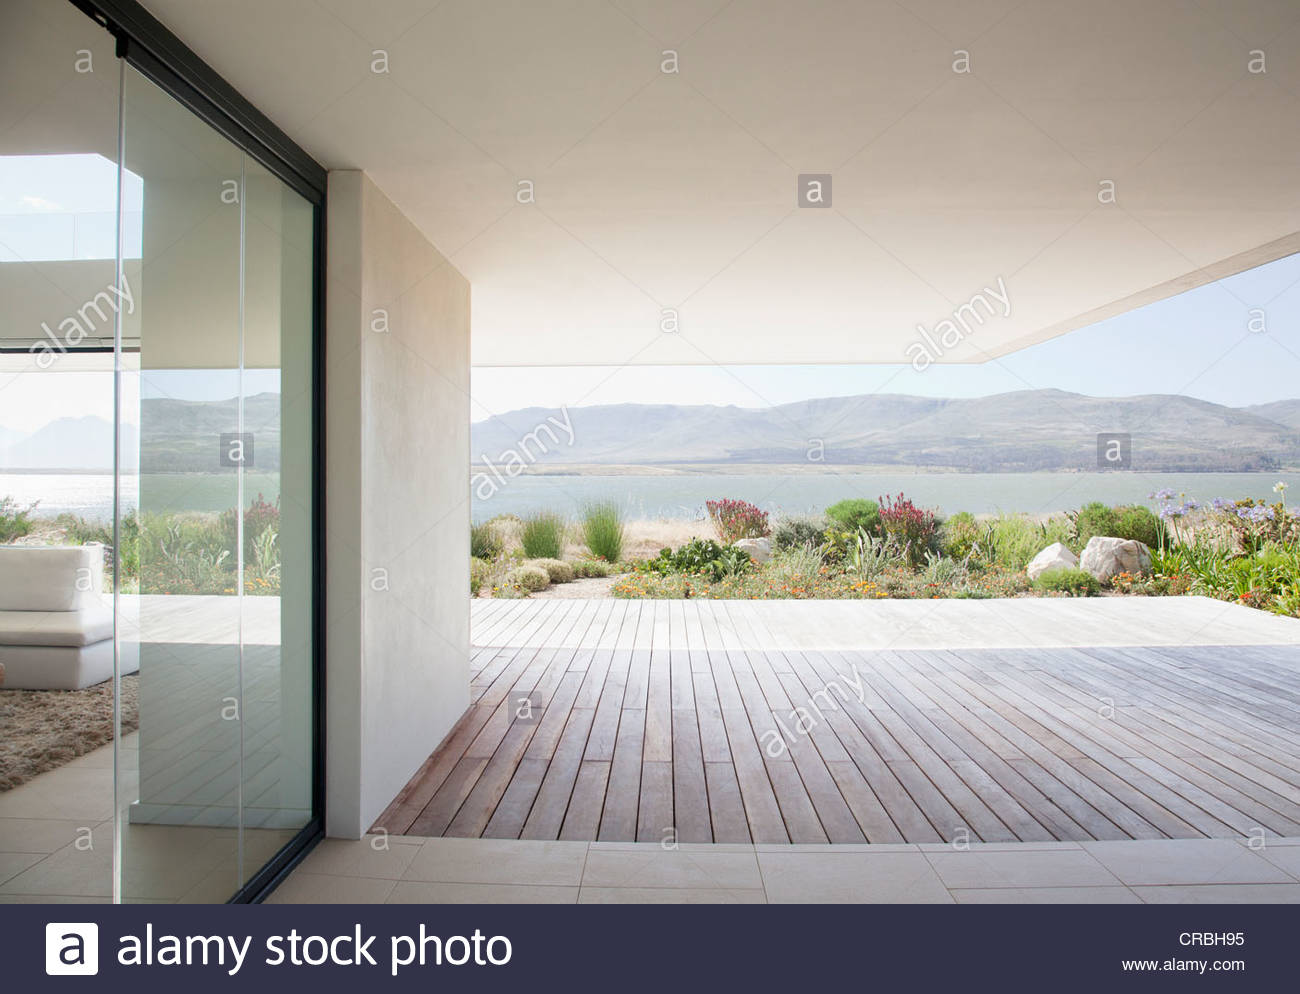 View of lake from patio of modern house - Stock Image